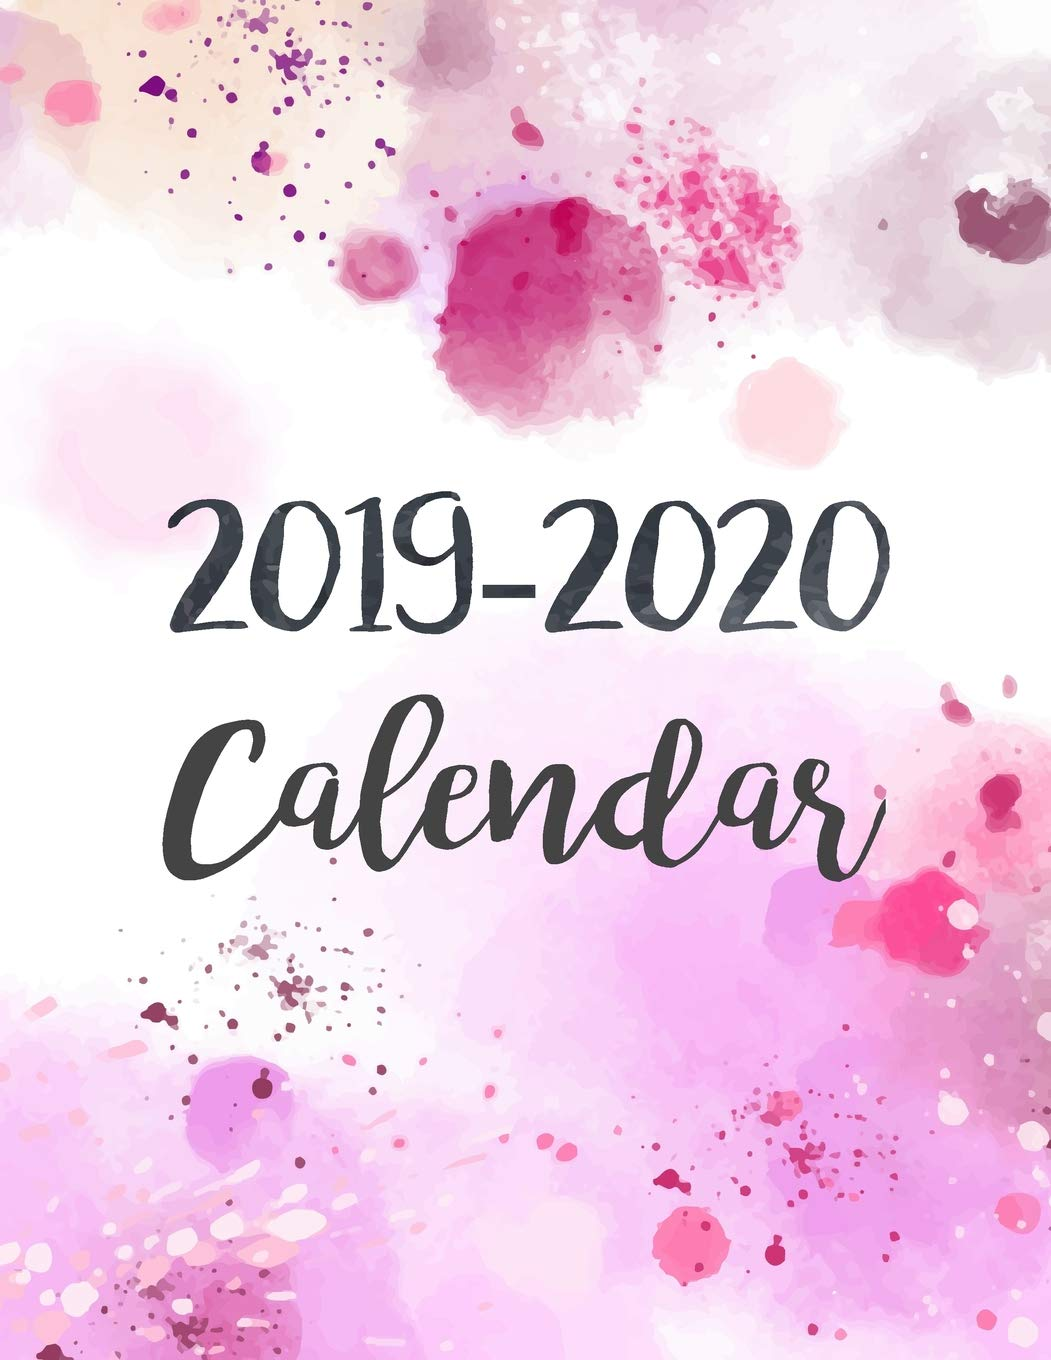 December 2020 Calendar With January 2020 2019 2020 Calendar: Daily Weekly Monthly Calendar Planner | 24